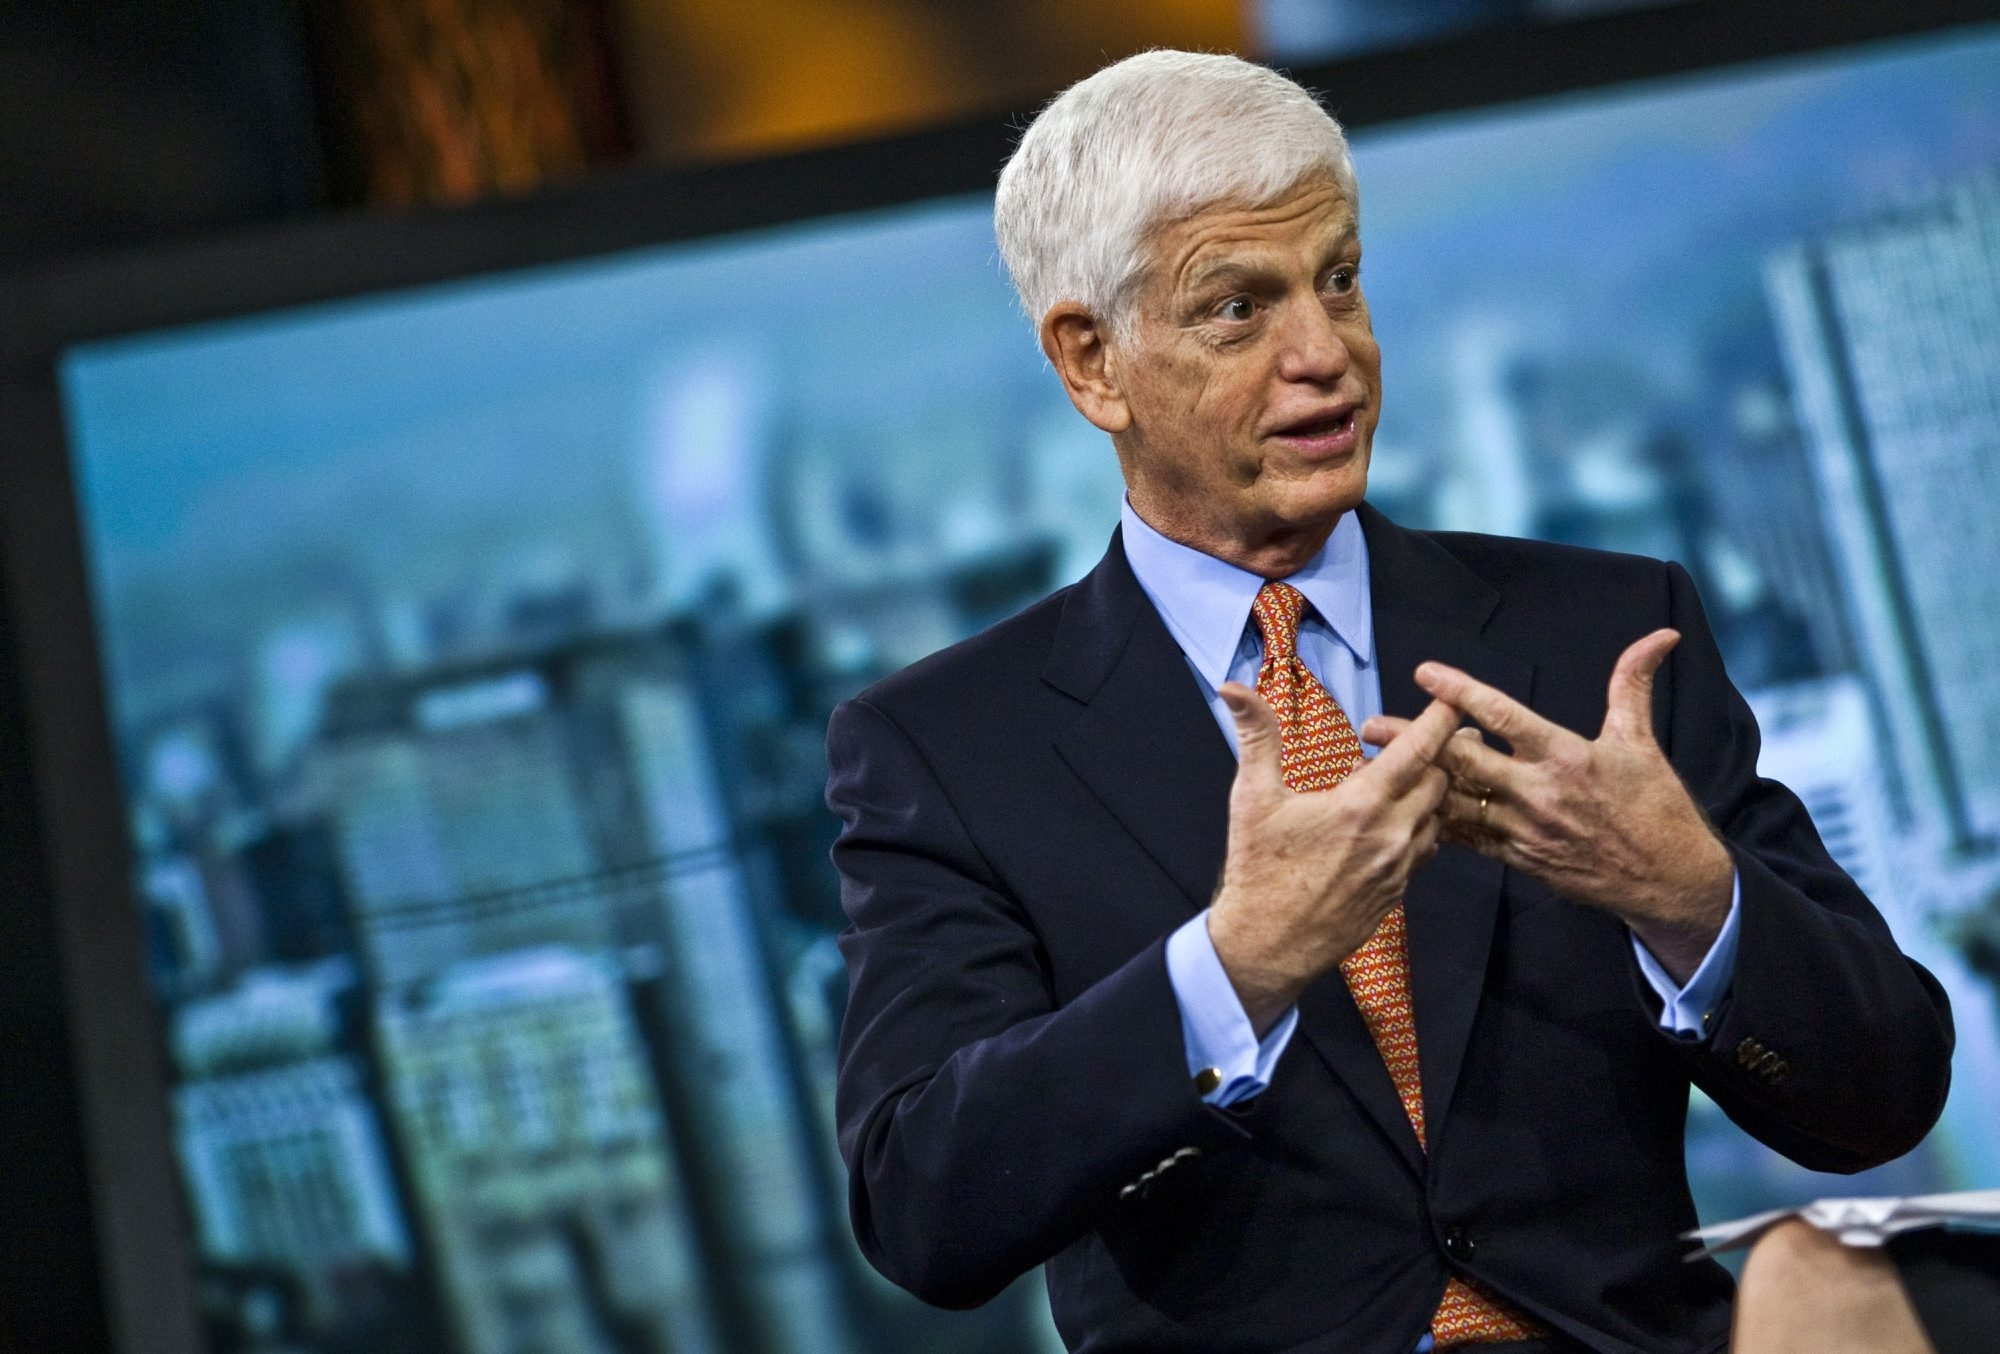 """Mario Gabelli, chairman and chief executive officer of Gamco Investors Inc., owns 9.17 percent of National Fuel's stock. He says his proposal to spin off the utility business from the others is """"a question of enhancing the underlying value of the company.""""   """"Right now, we think National Fuel Gas at $70 is significantly undervalued."""" – Investor Mario Gabelli, the second-largest shareholder in National Fuel Gas Co."""